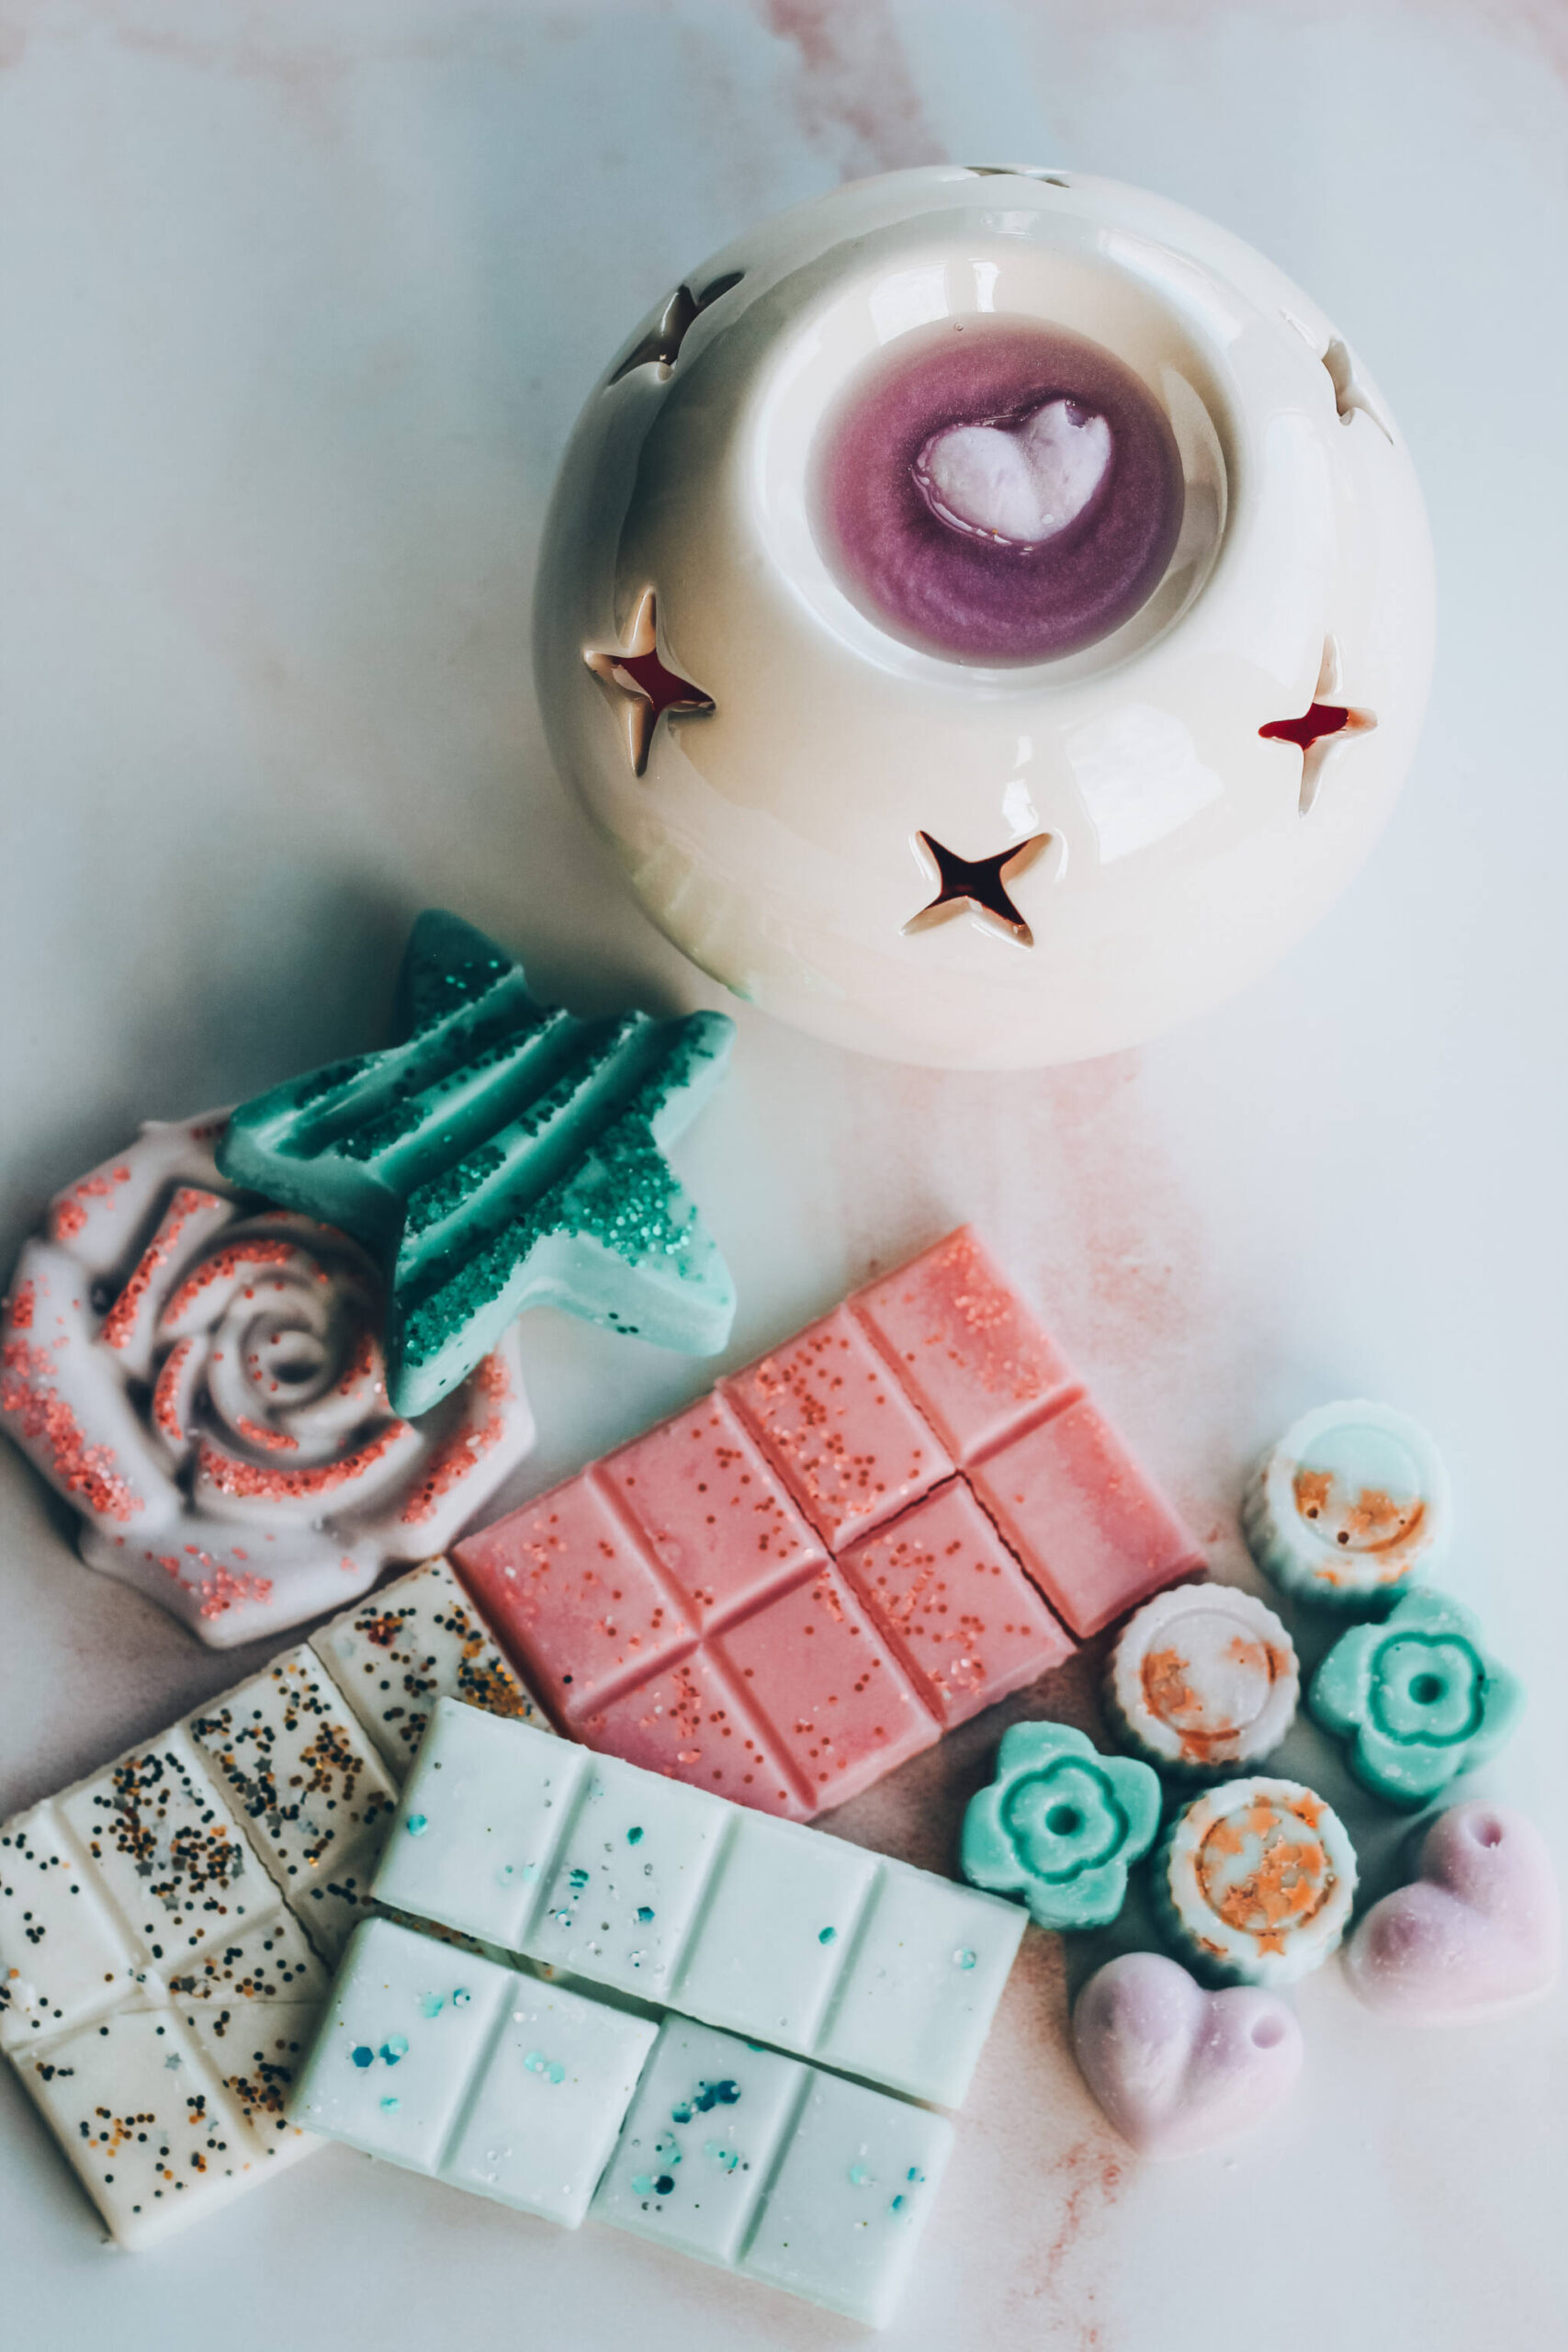 An assortment of wax melts in snap bars, minis, rose and star next to a wax melt melting in a burner